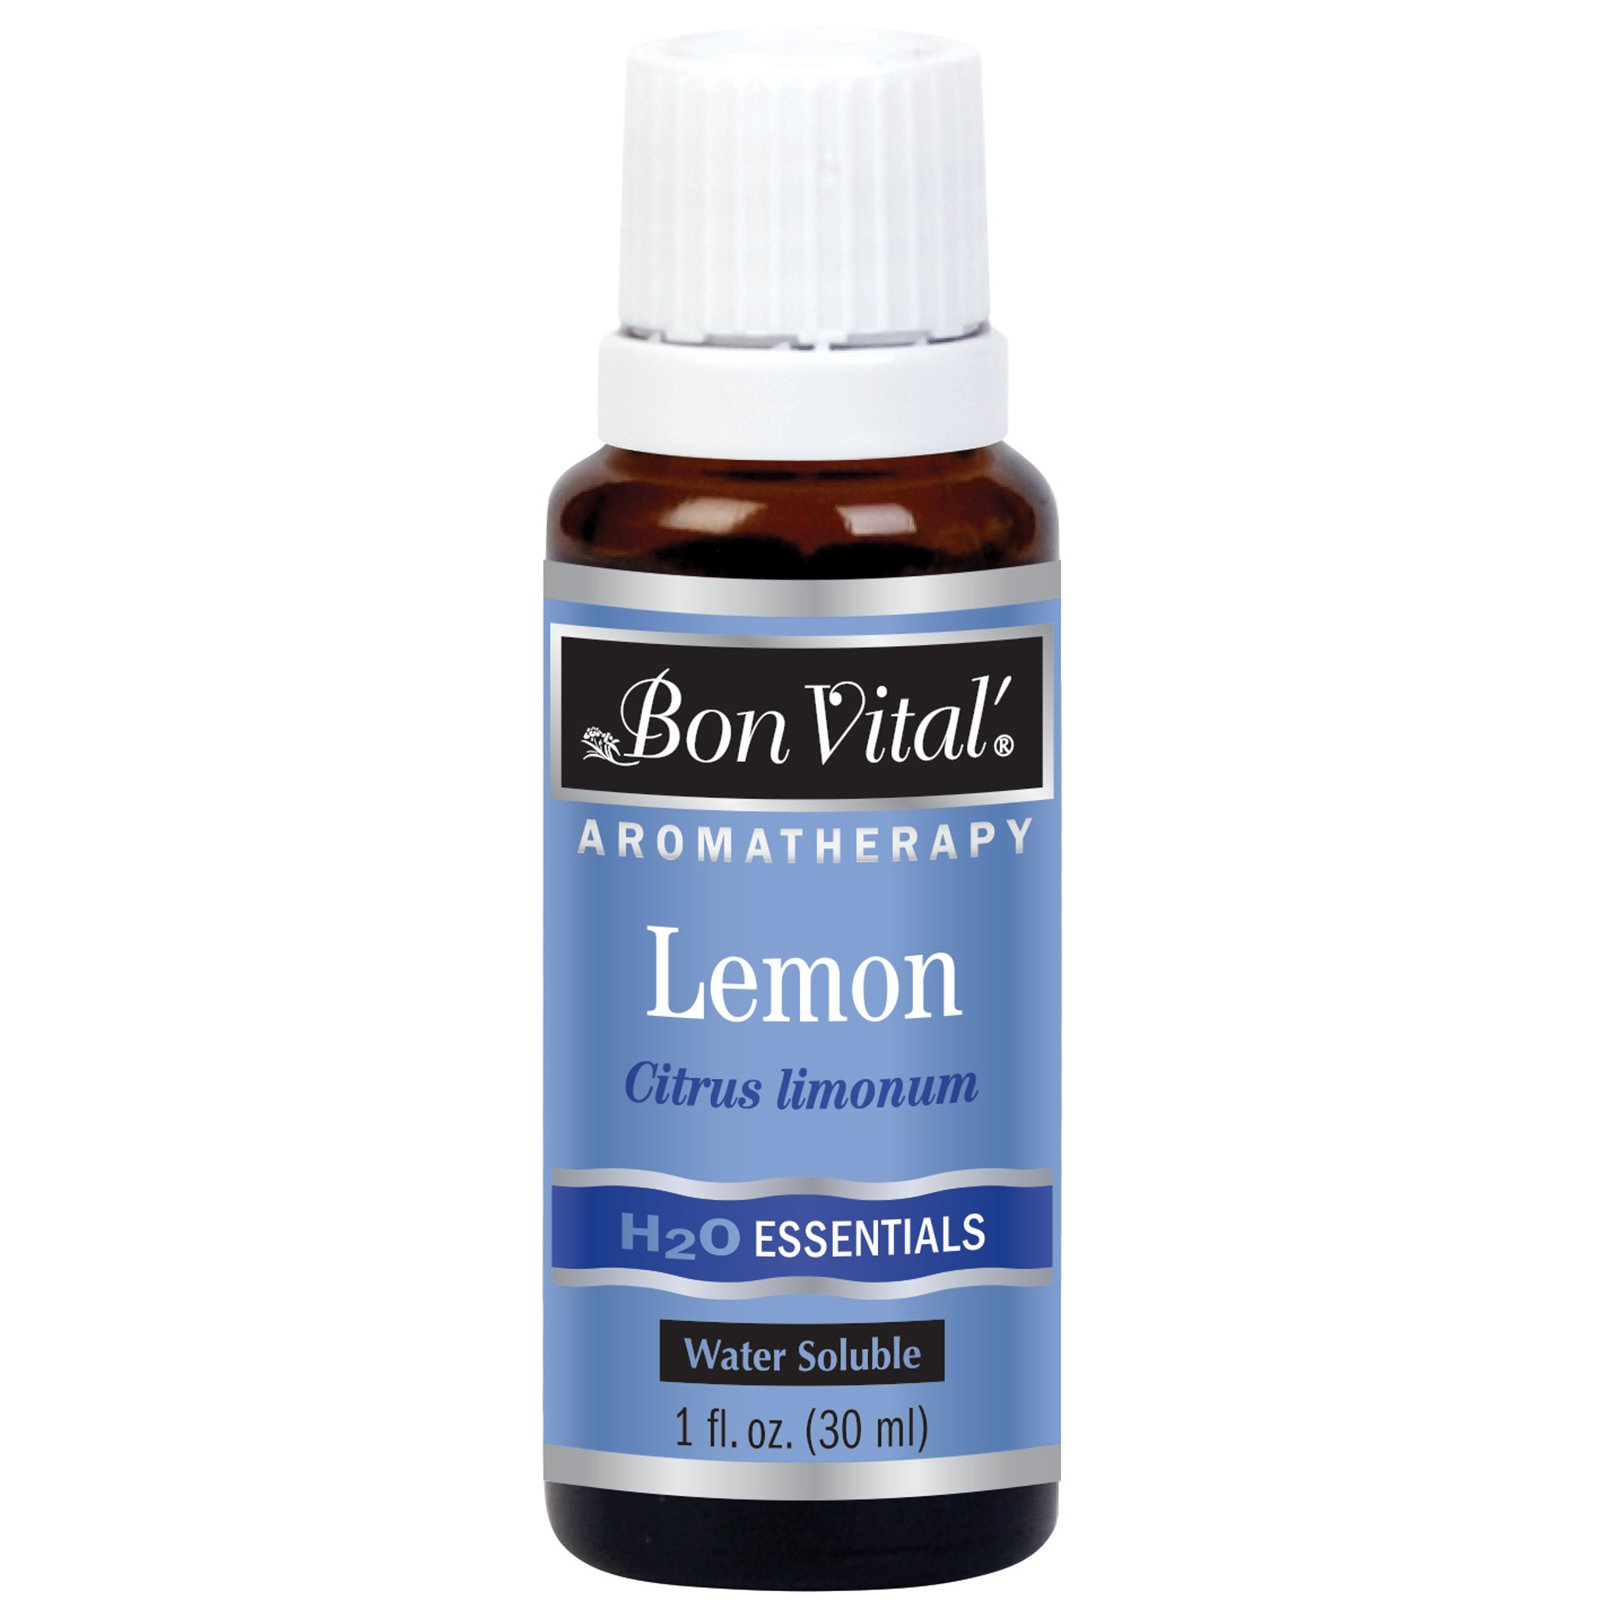 Bon Vital' Aromatherapy Lemon H2O Oil, Best Essential Oil Blends with Water, Oil for Uplifting Astringent Heals Varicose Veins, Add to Facial Steamer, Whirlpool, Pedicure Tub, and Steam Room, 1 Ounce